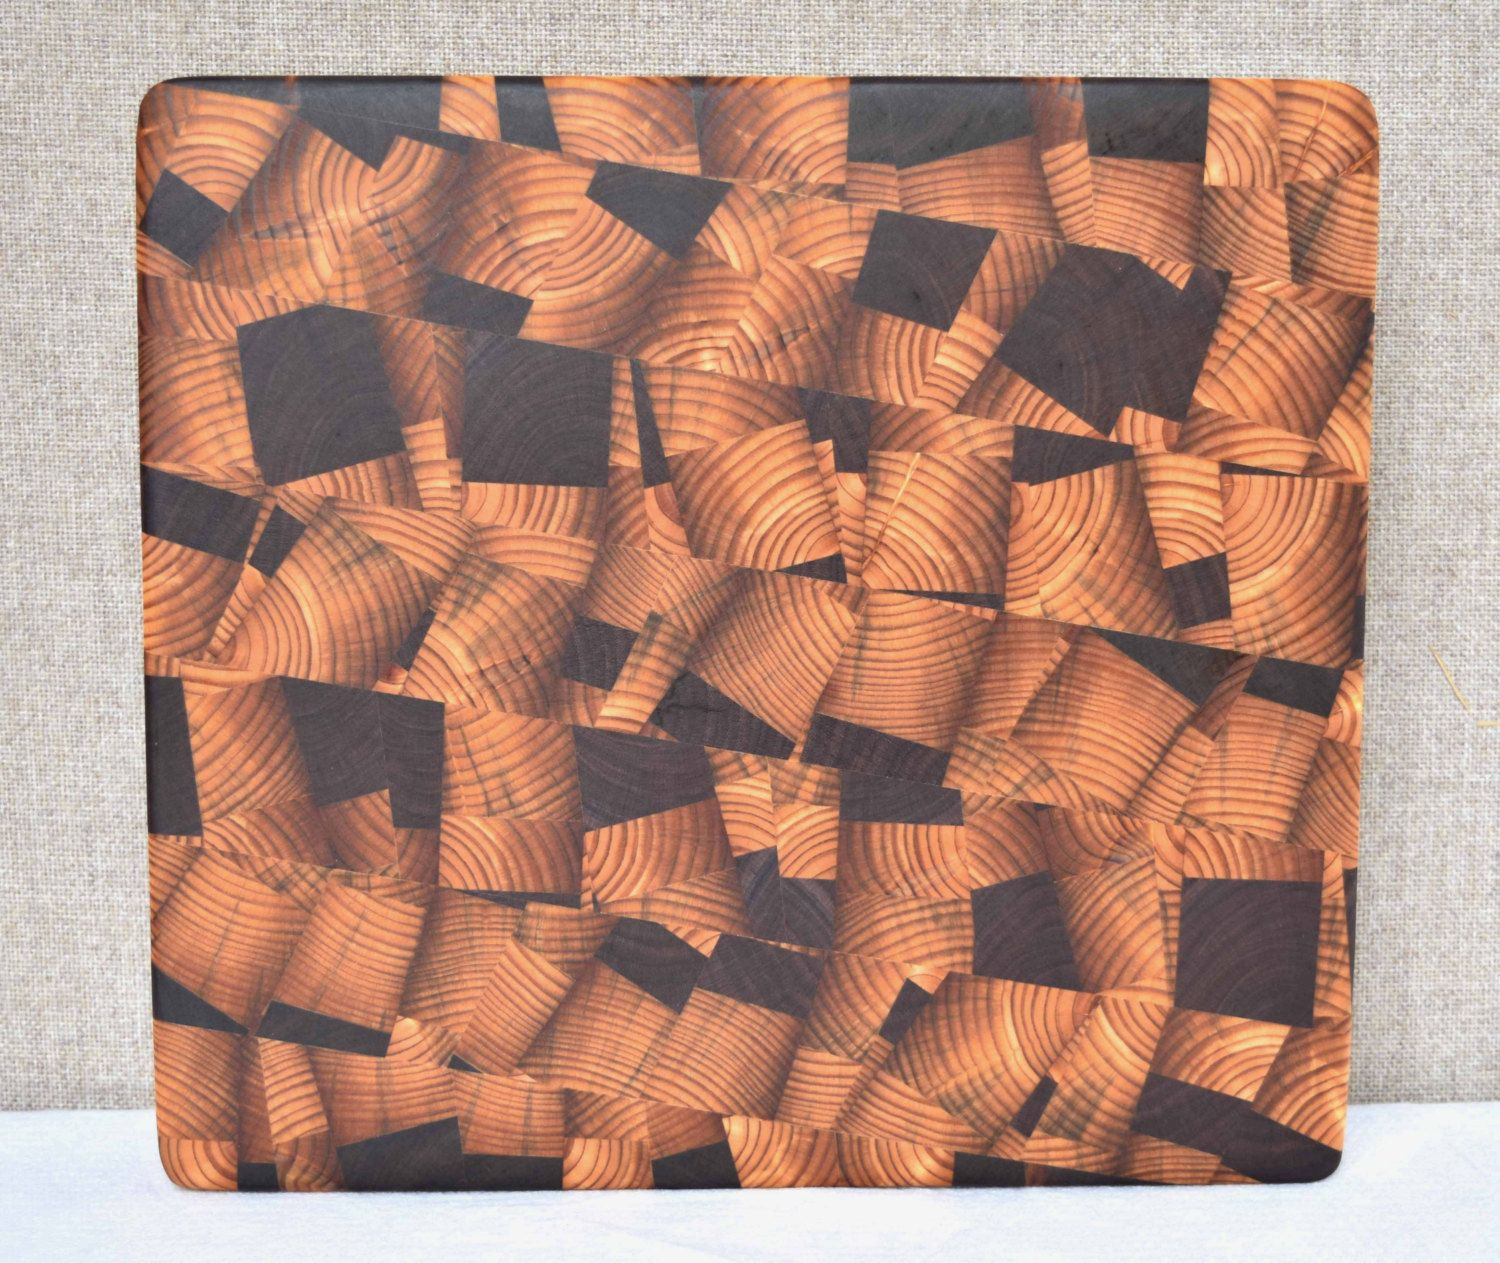 Cutting / Serving Board - End Grain Reclaimed Old Growth Red Pine & Walnut by CuttingBoardpro on Etsy